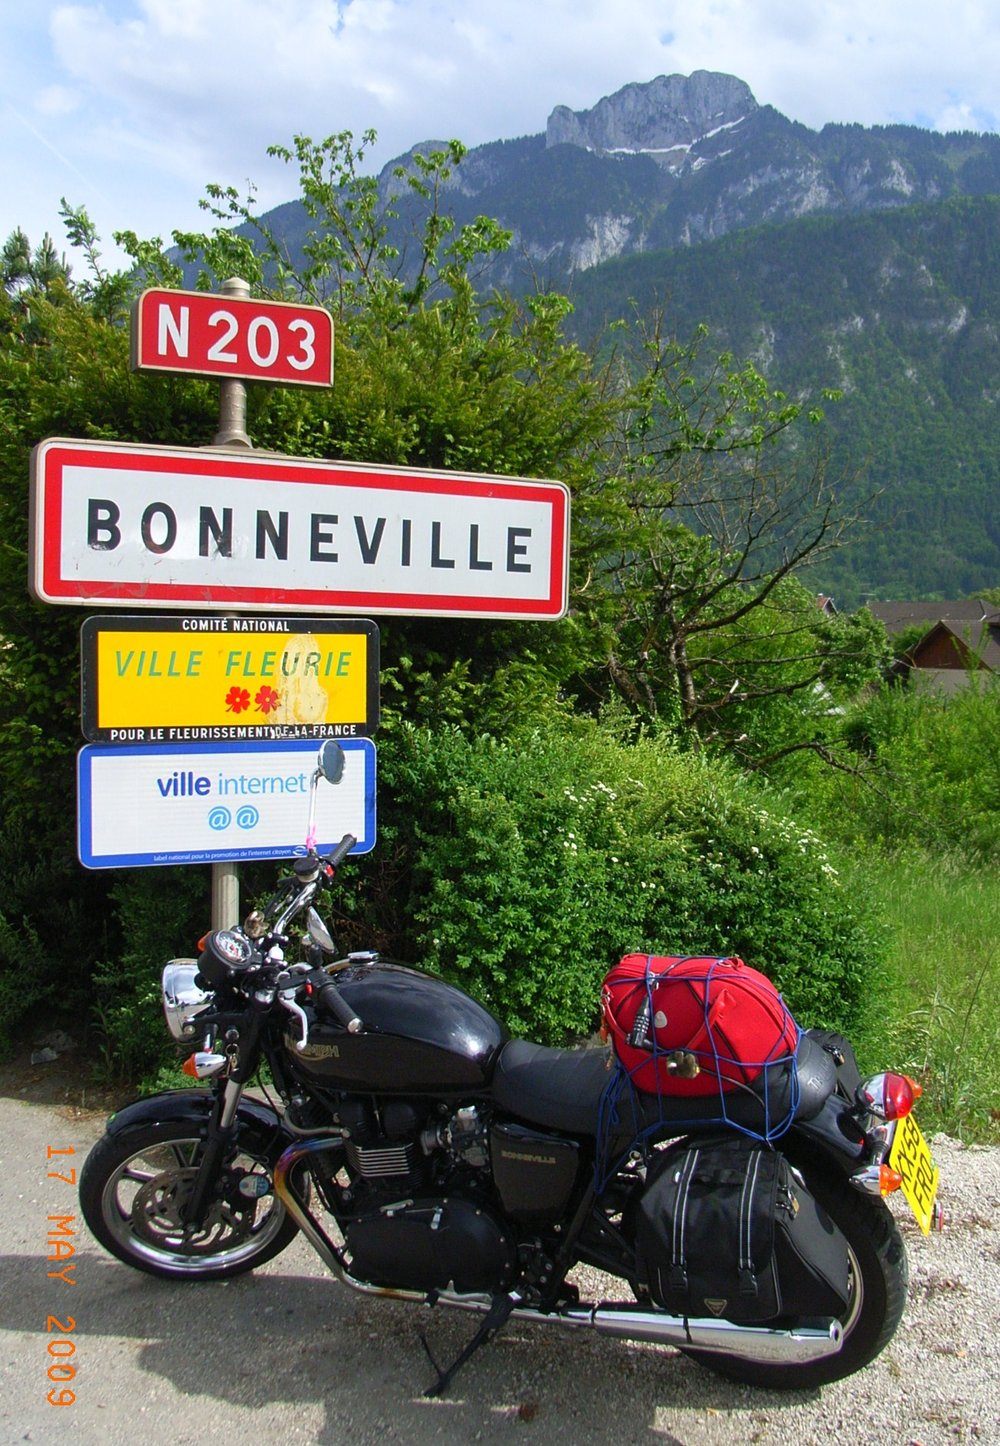 2009, obviously and i spent three weeks riding around france, covering 21 alpine passes and visiting this town as part of the 50 anniversary of the triumph model 'bonneville'.